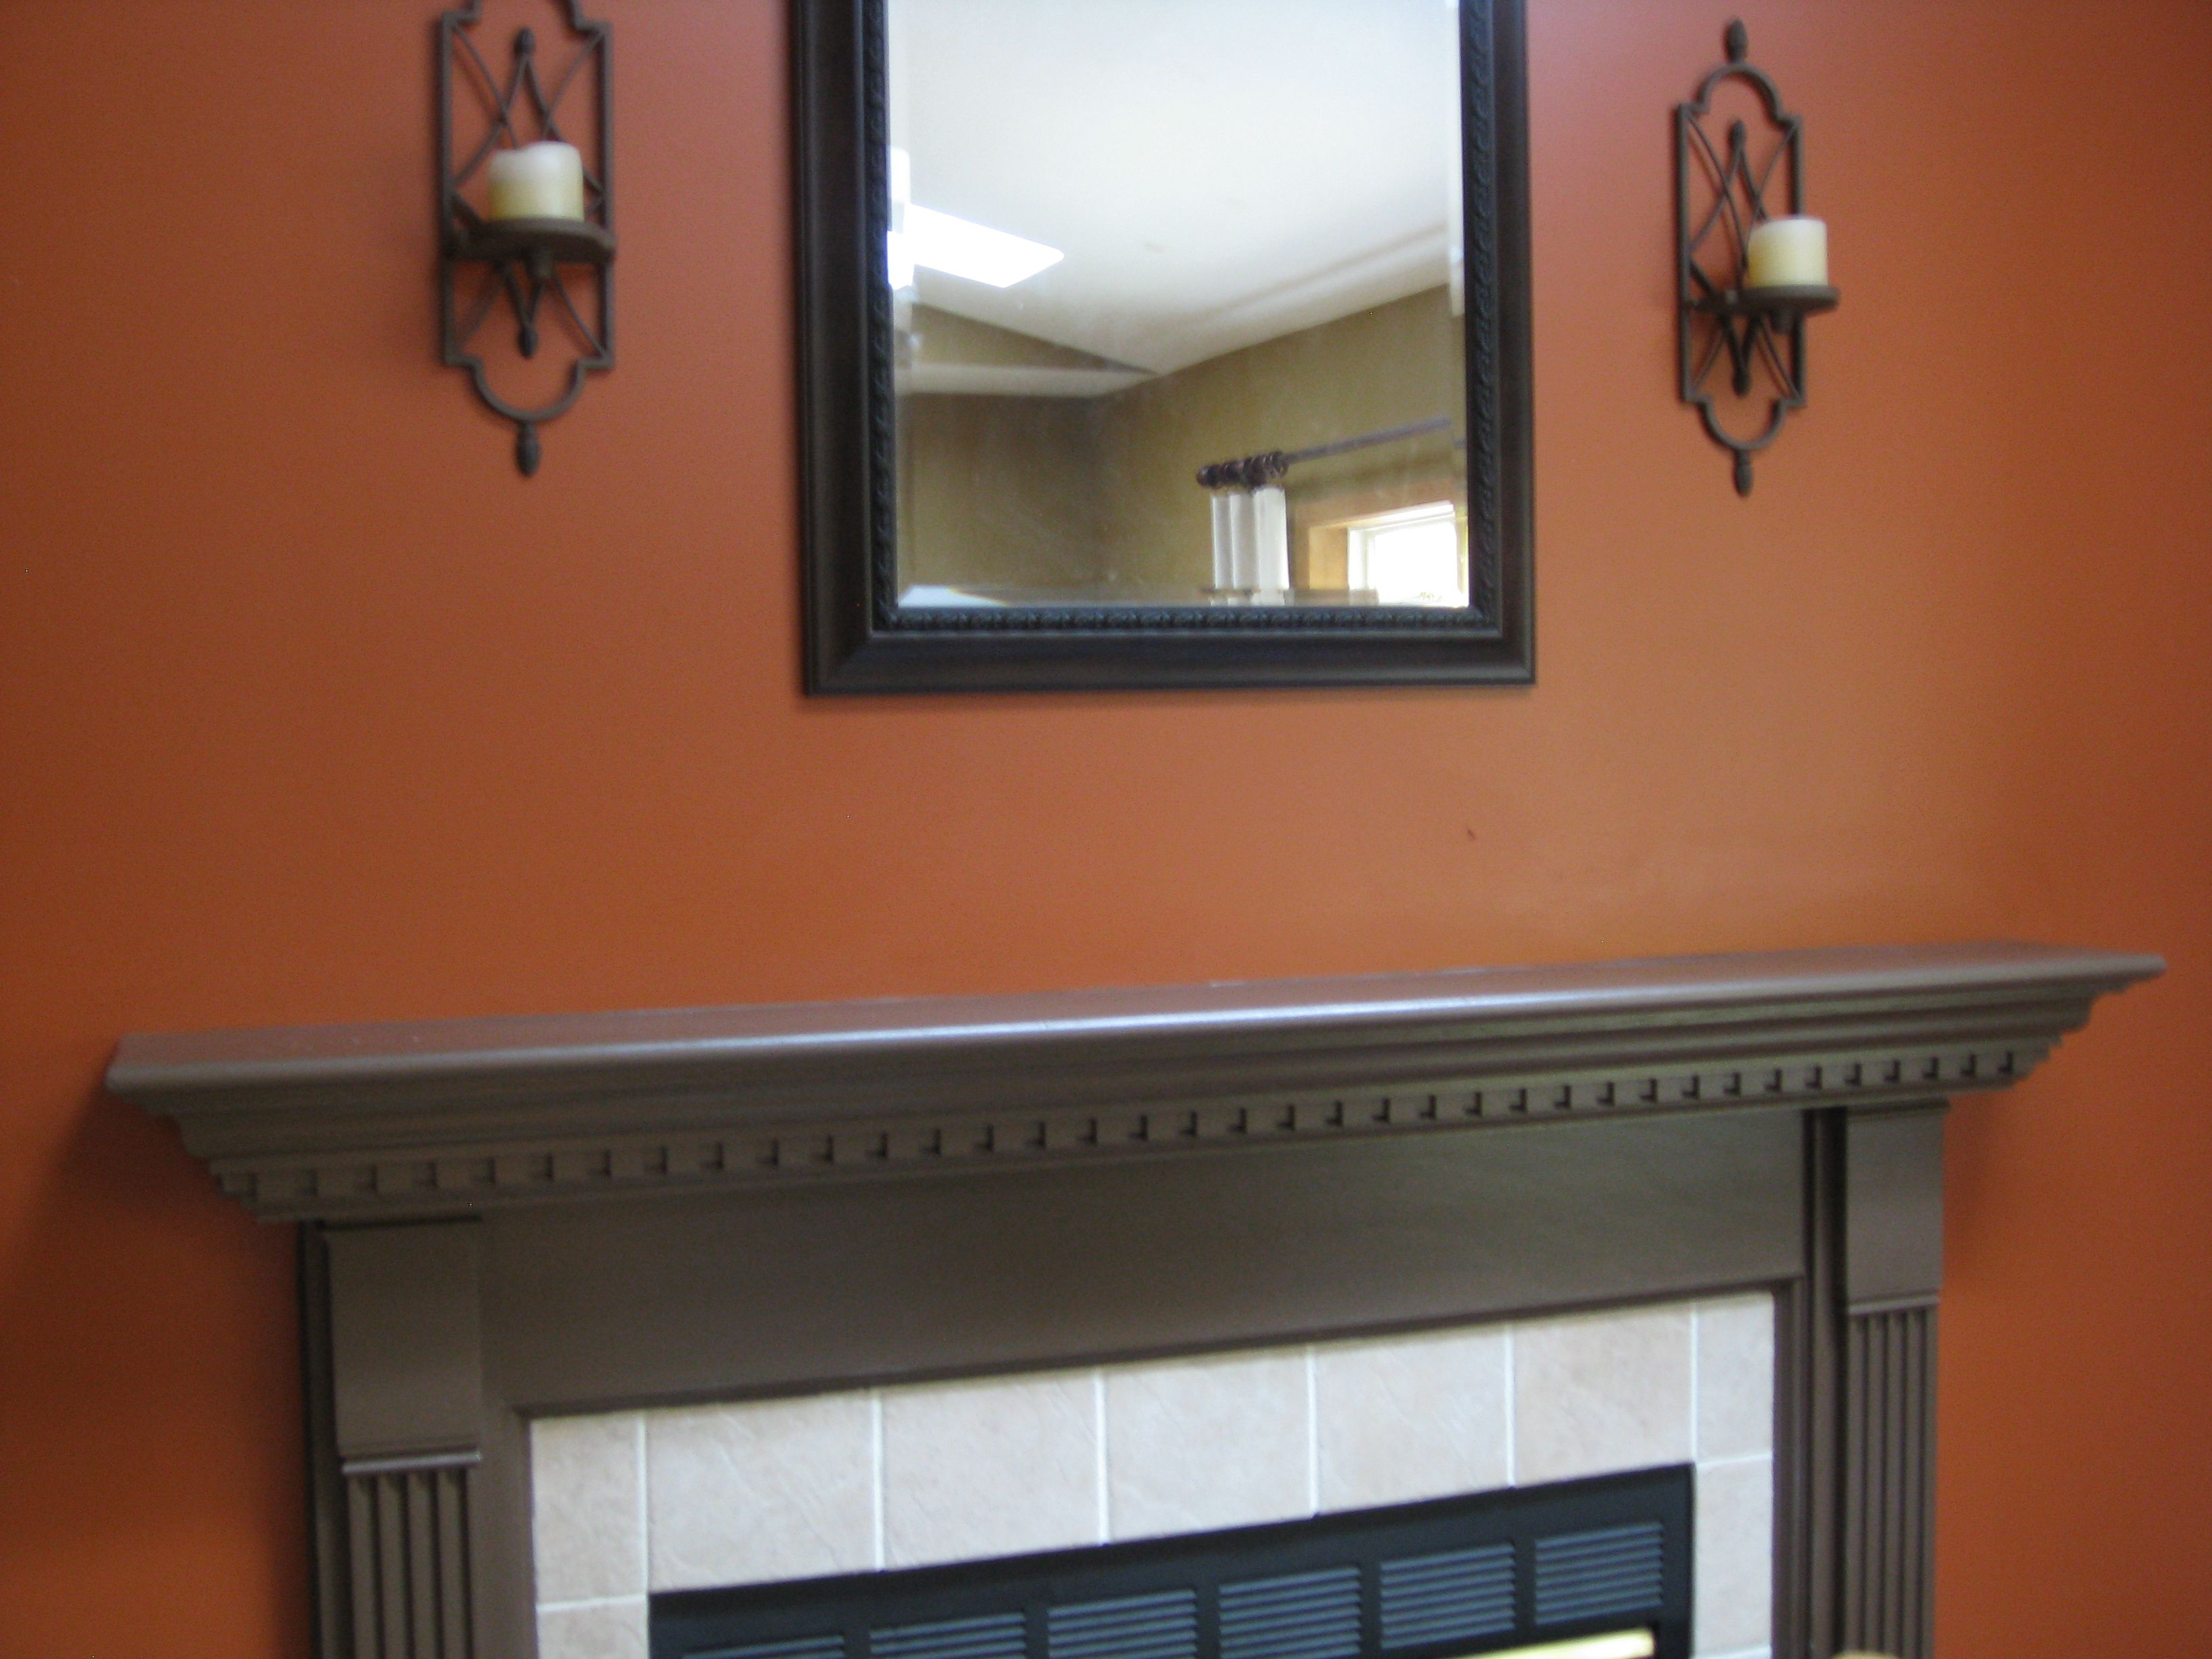 Burnt Orange Paint I Painted My Loft A Burnt Orange Color Like Thisi Was A Little